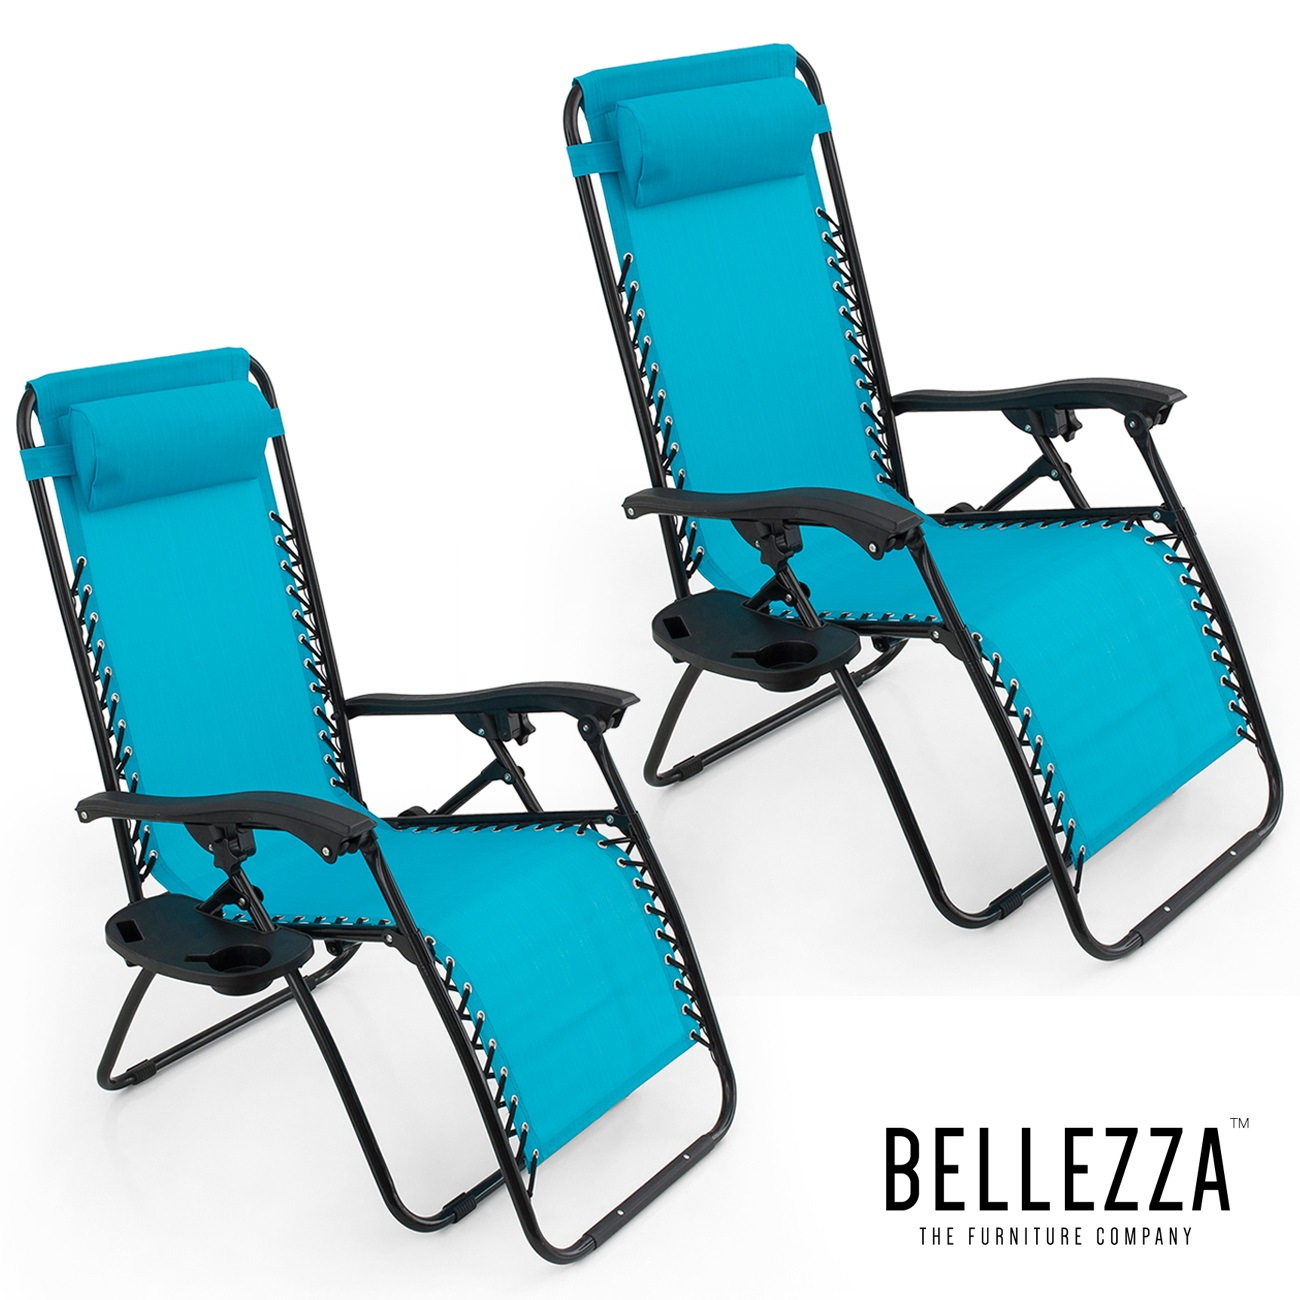 BELLEZE Anti Gravity Chair Set of 2 Adjustable Recliner Chair Tray with Mobile Device Holder Sky Blue Padded - Walmart.com  sc 1 st  Walmart & BELLEZE Anti Gravity Chair Set of 2 Adjustable Recliner Chair Tray ...